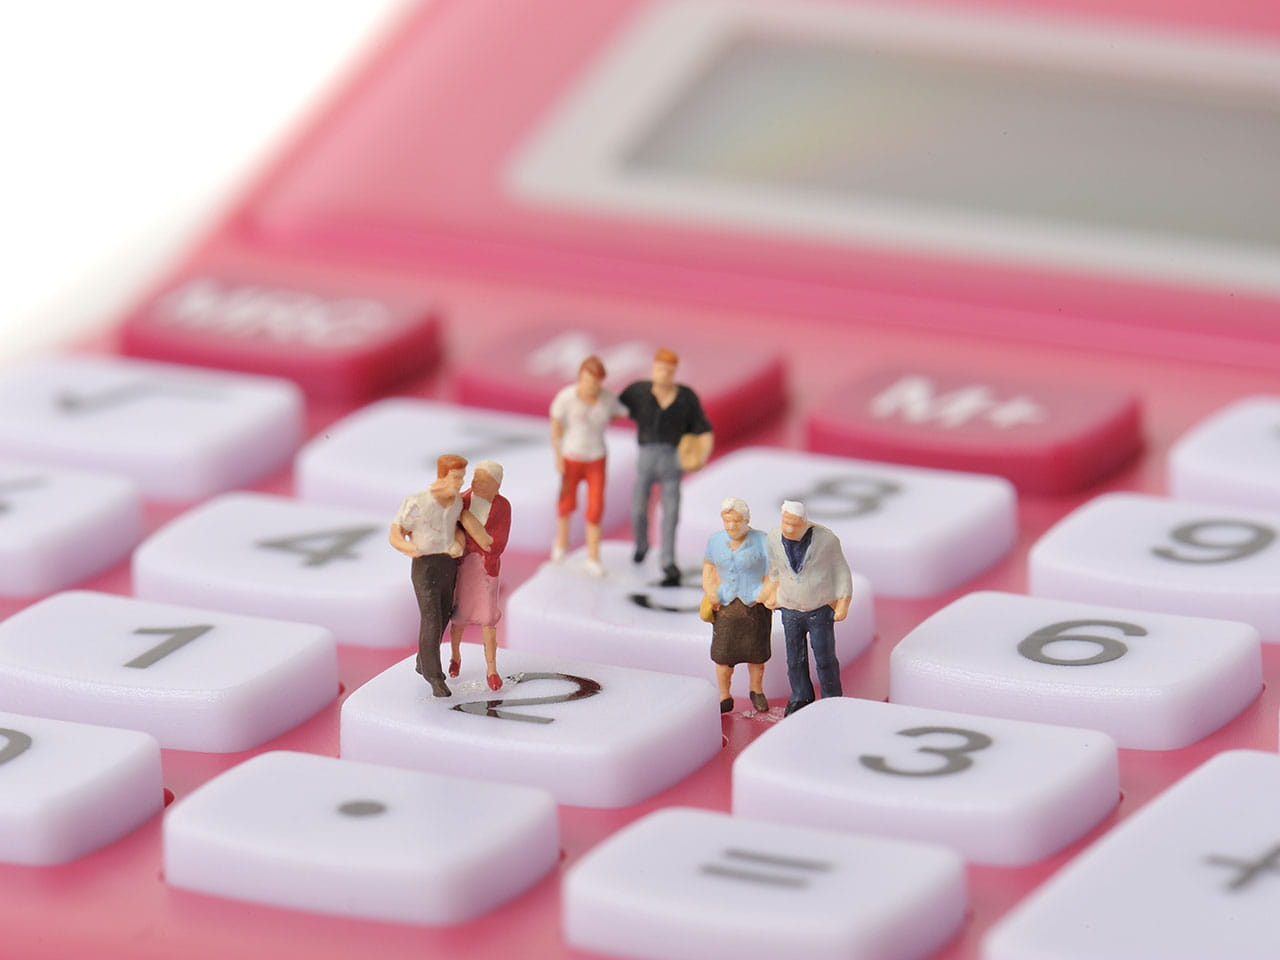 Model figures standing on calculator denoting budget update